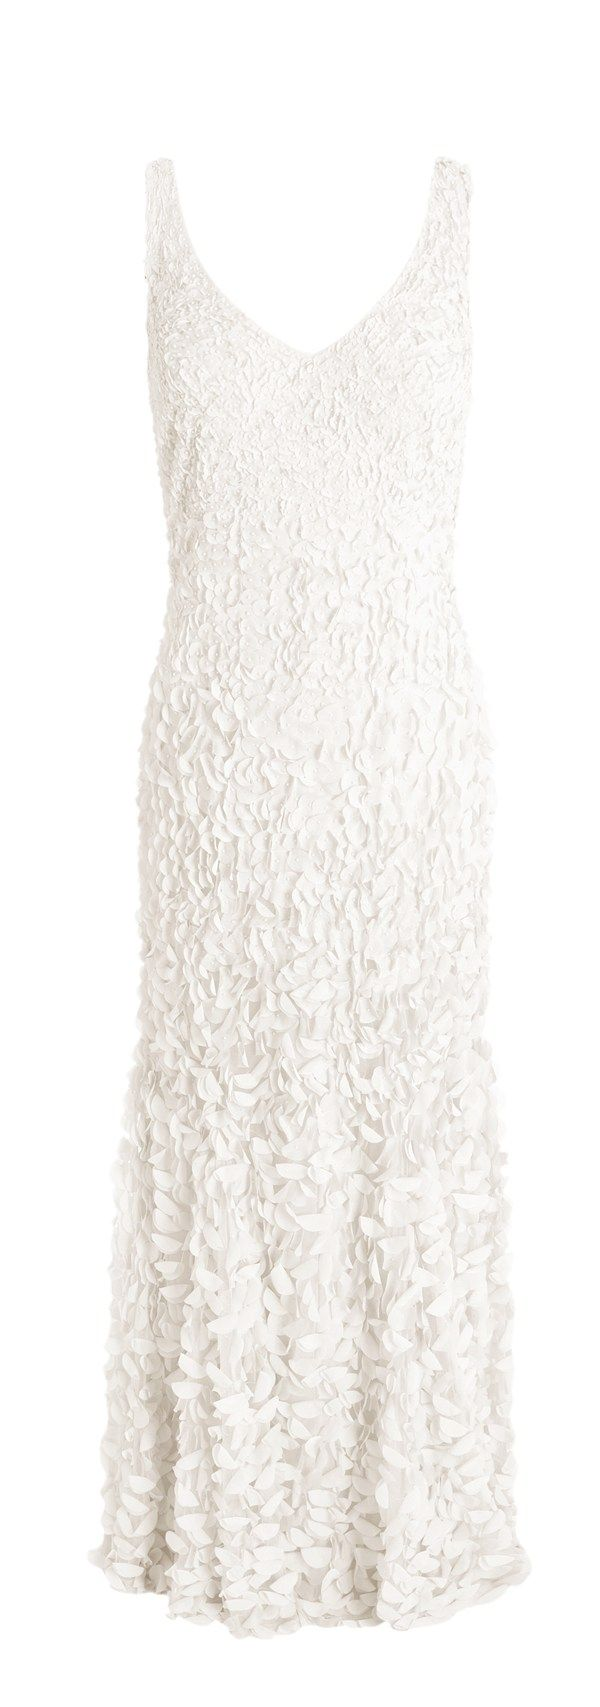 Take a look at our stunning selection of gorgeous wedding gowns for under £1,000